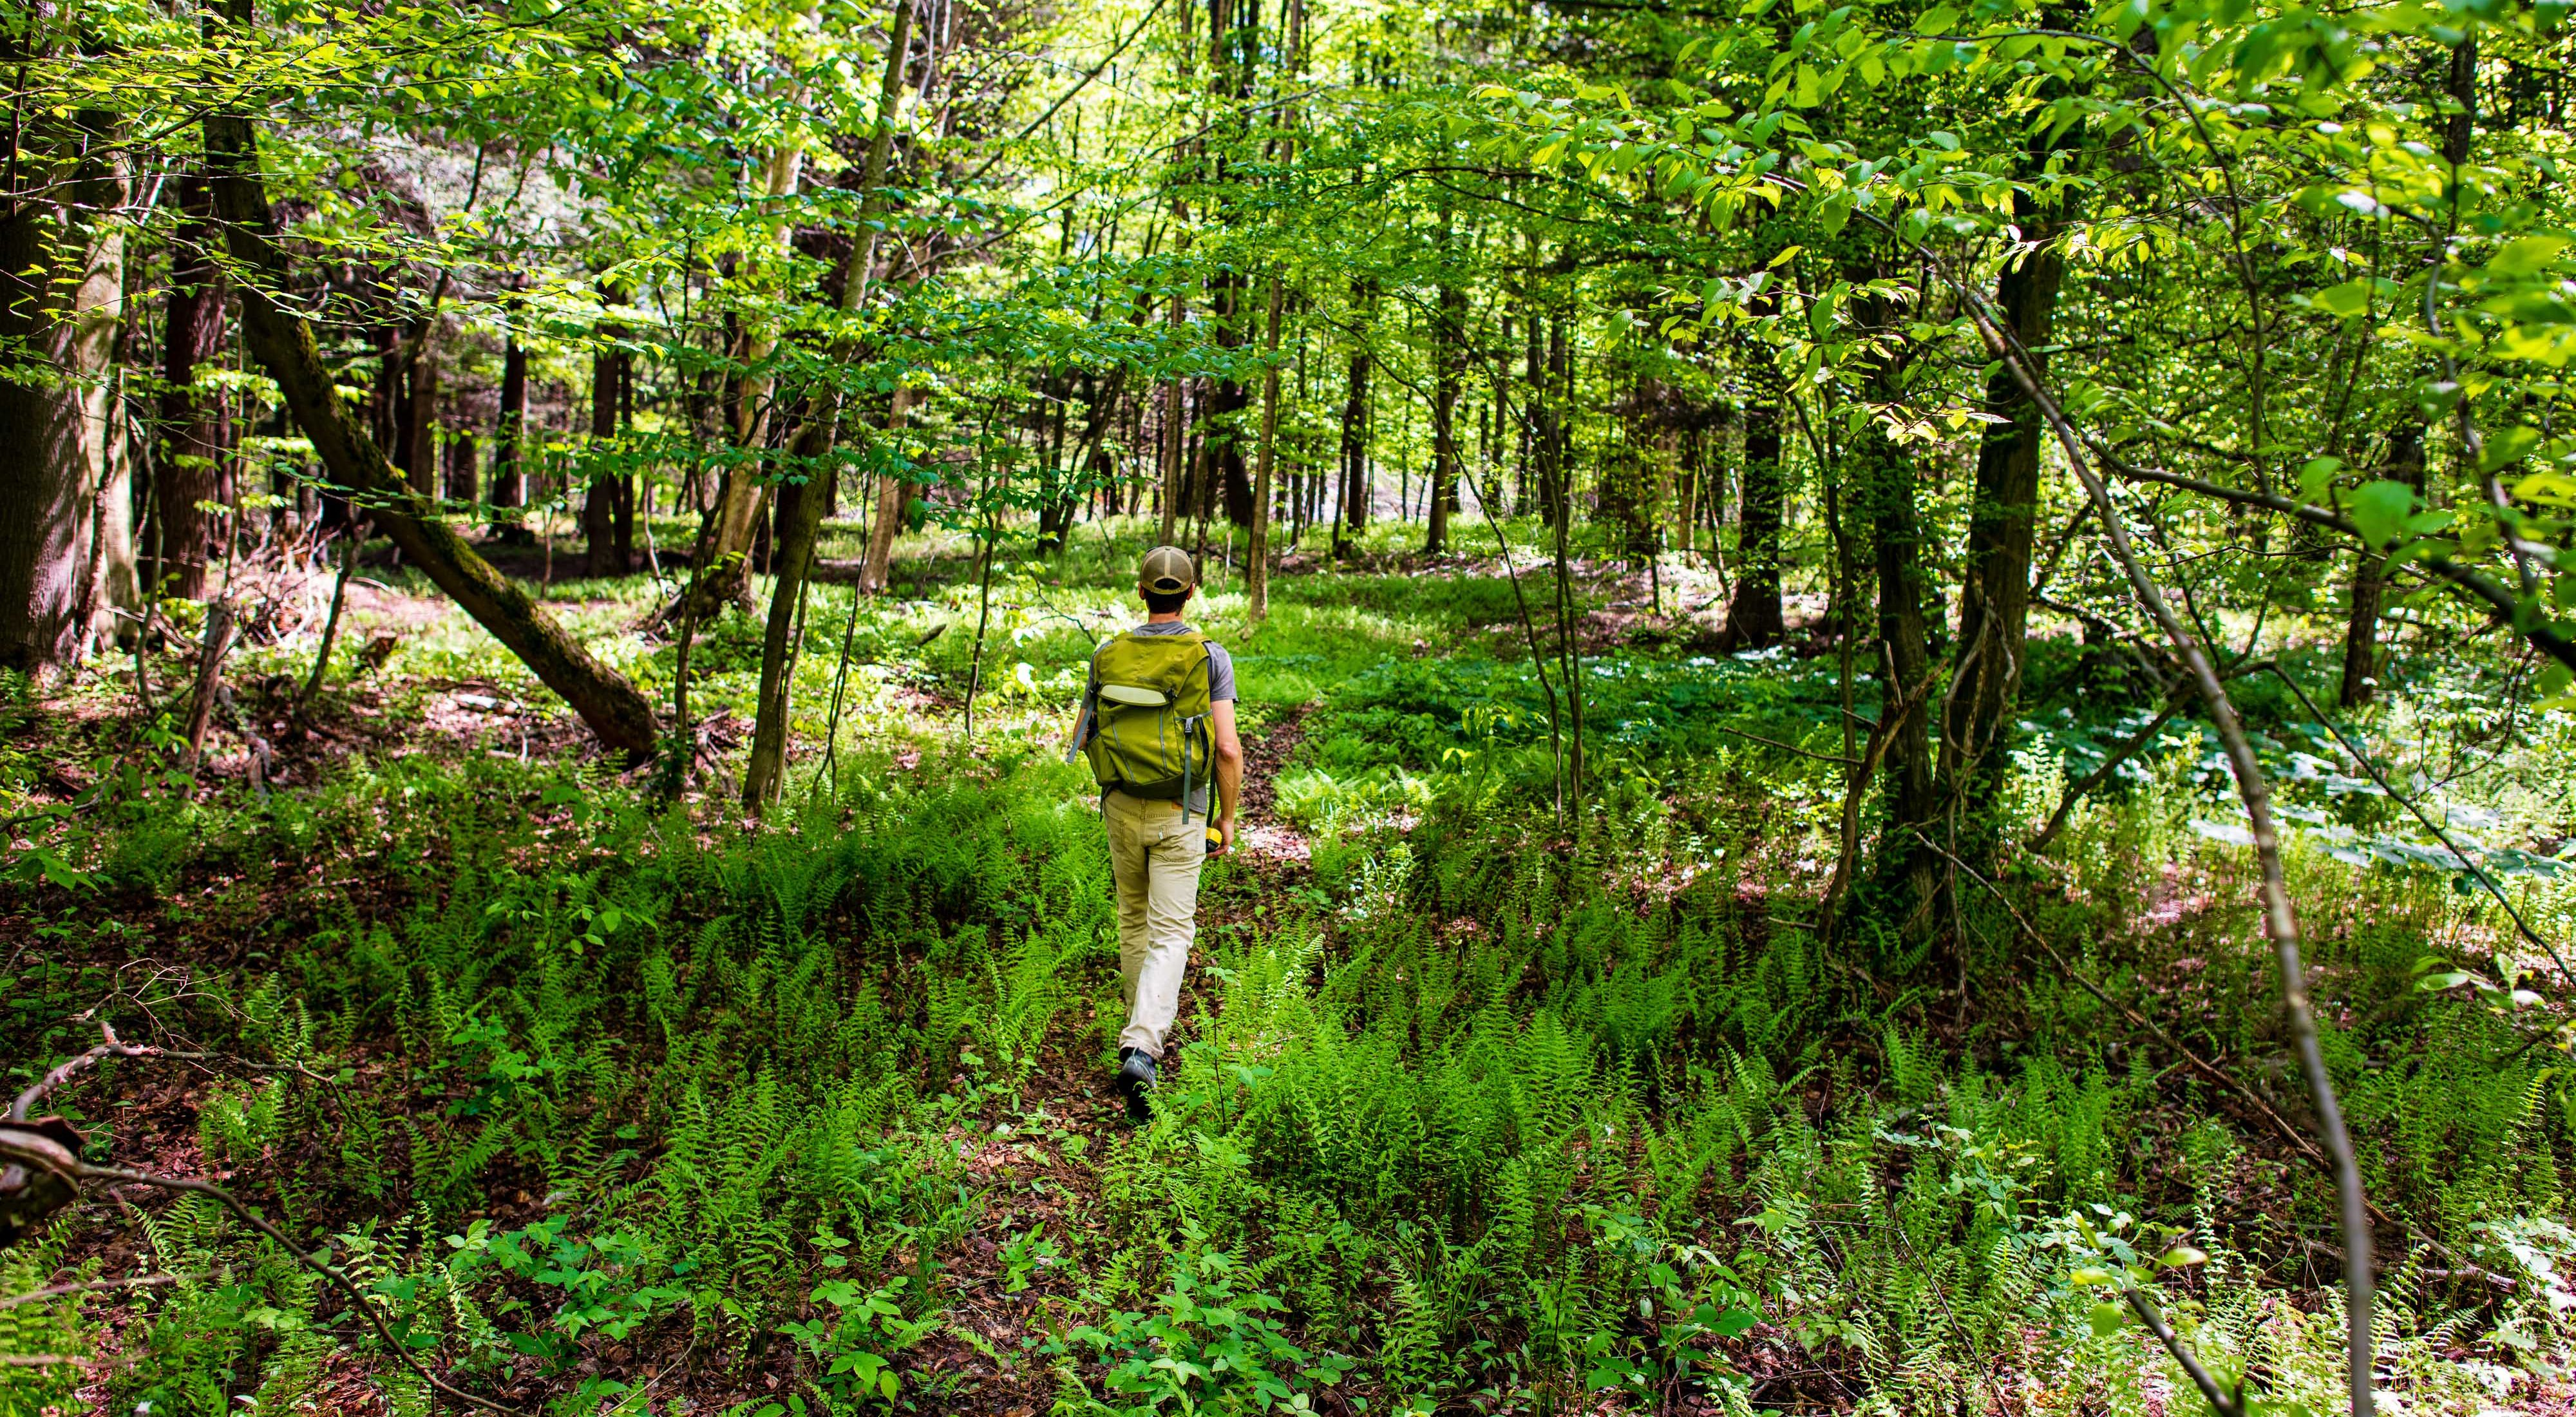 A man walking on a trail with ferns, trees and shrubs surrounding him.